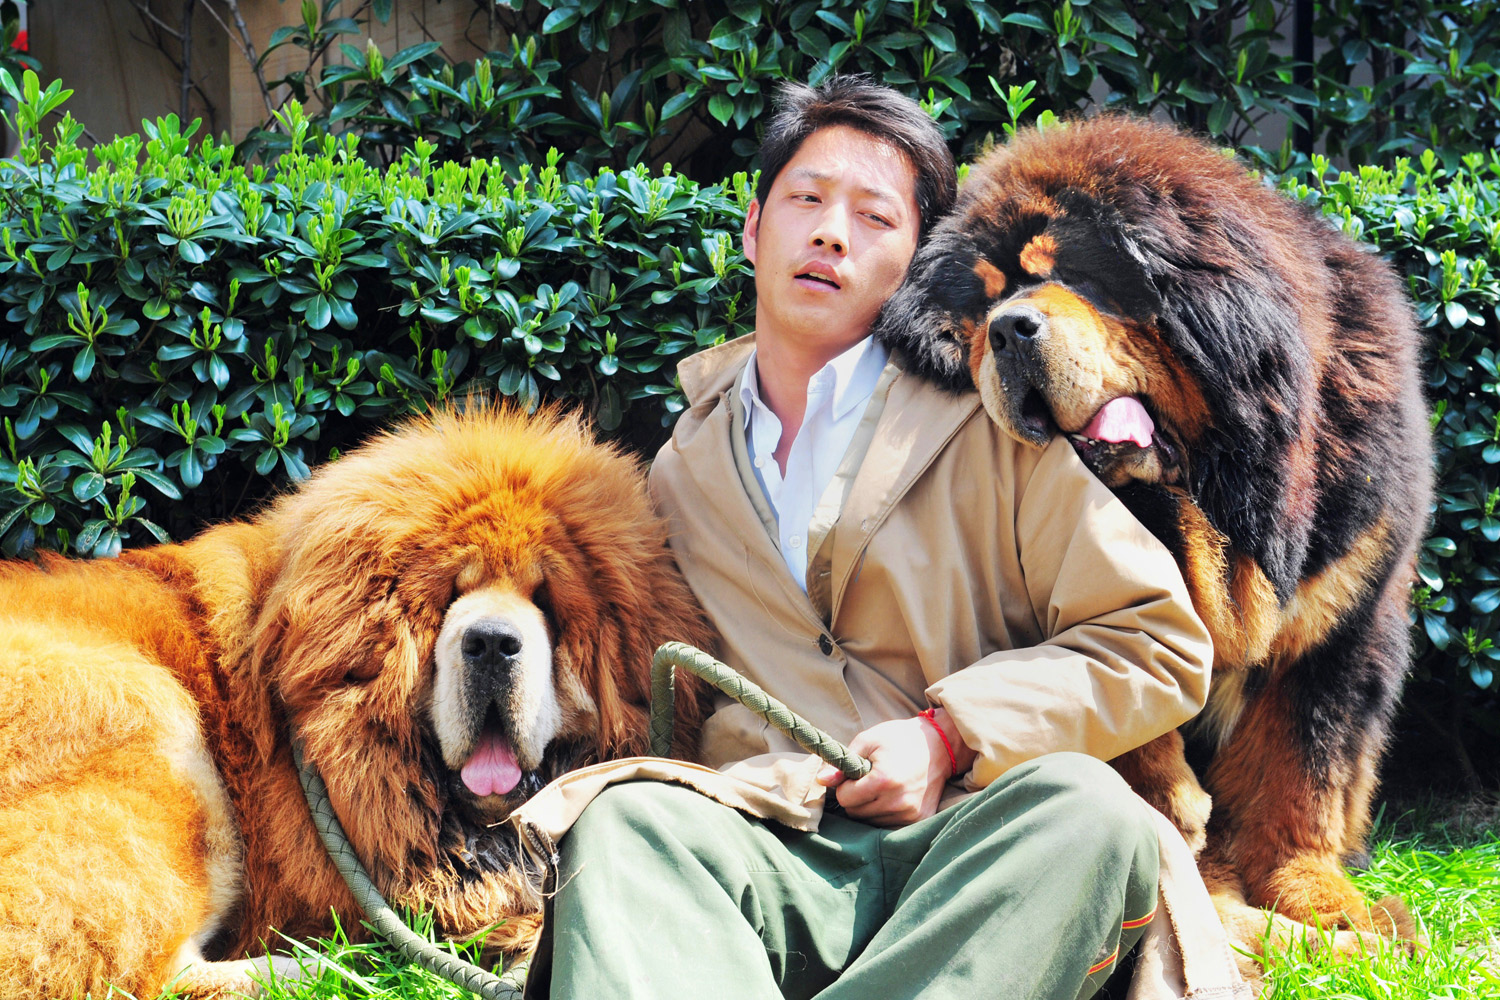 This picture taken on March 18, 2014 shows an unidentified man posing for a photo with two Tibetan mastiffs after they were sold at a 'luxury pet' fair in Hangzhou, in eastern China's Zhejiang province.